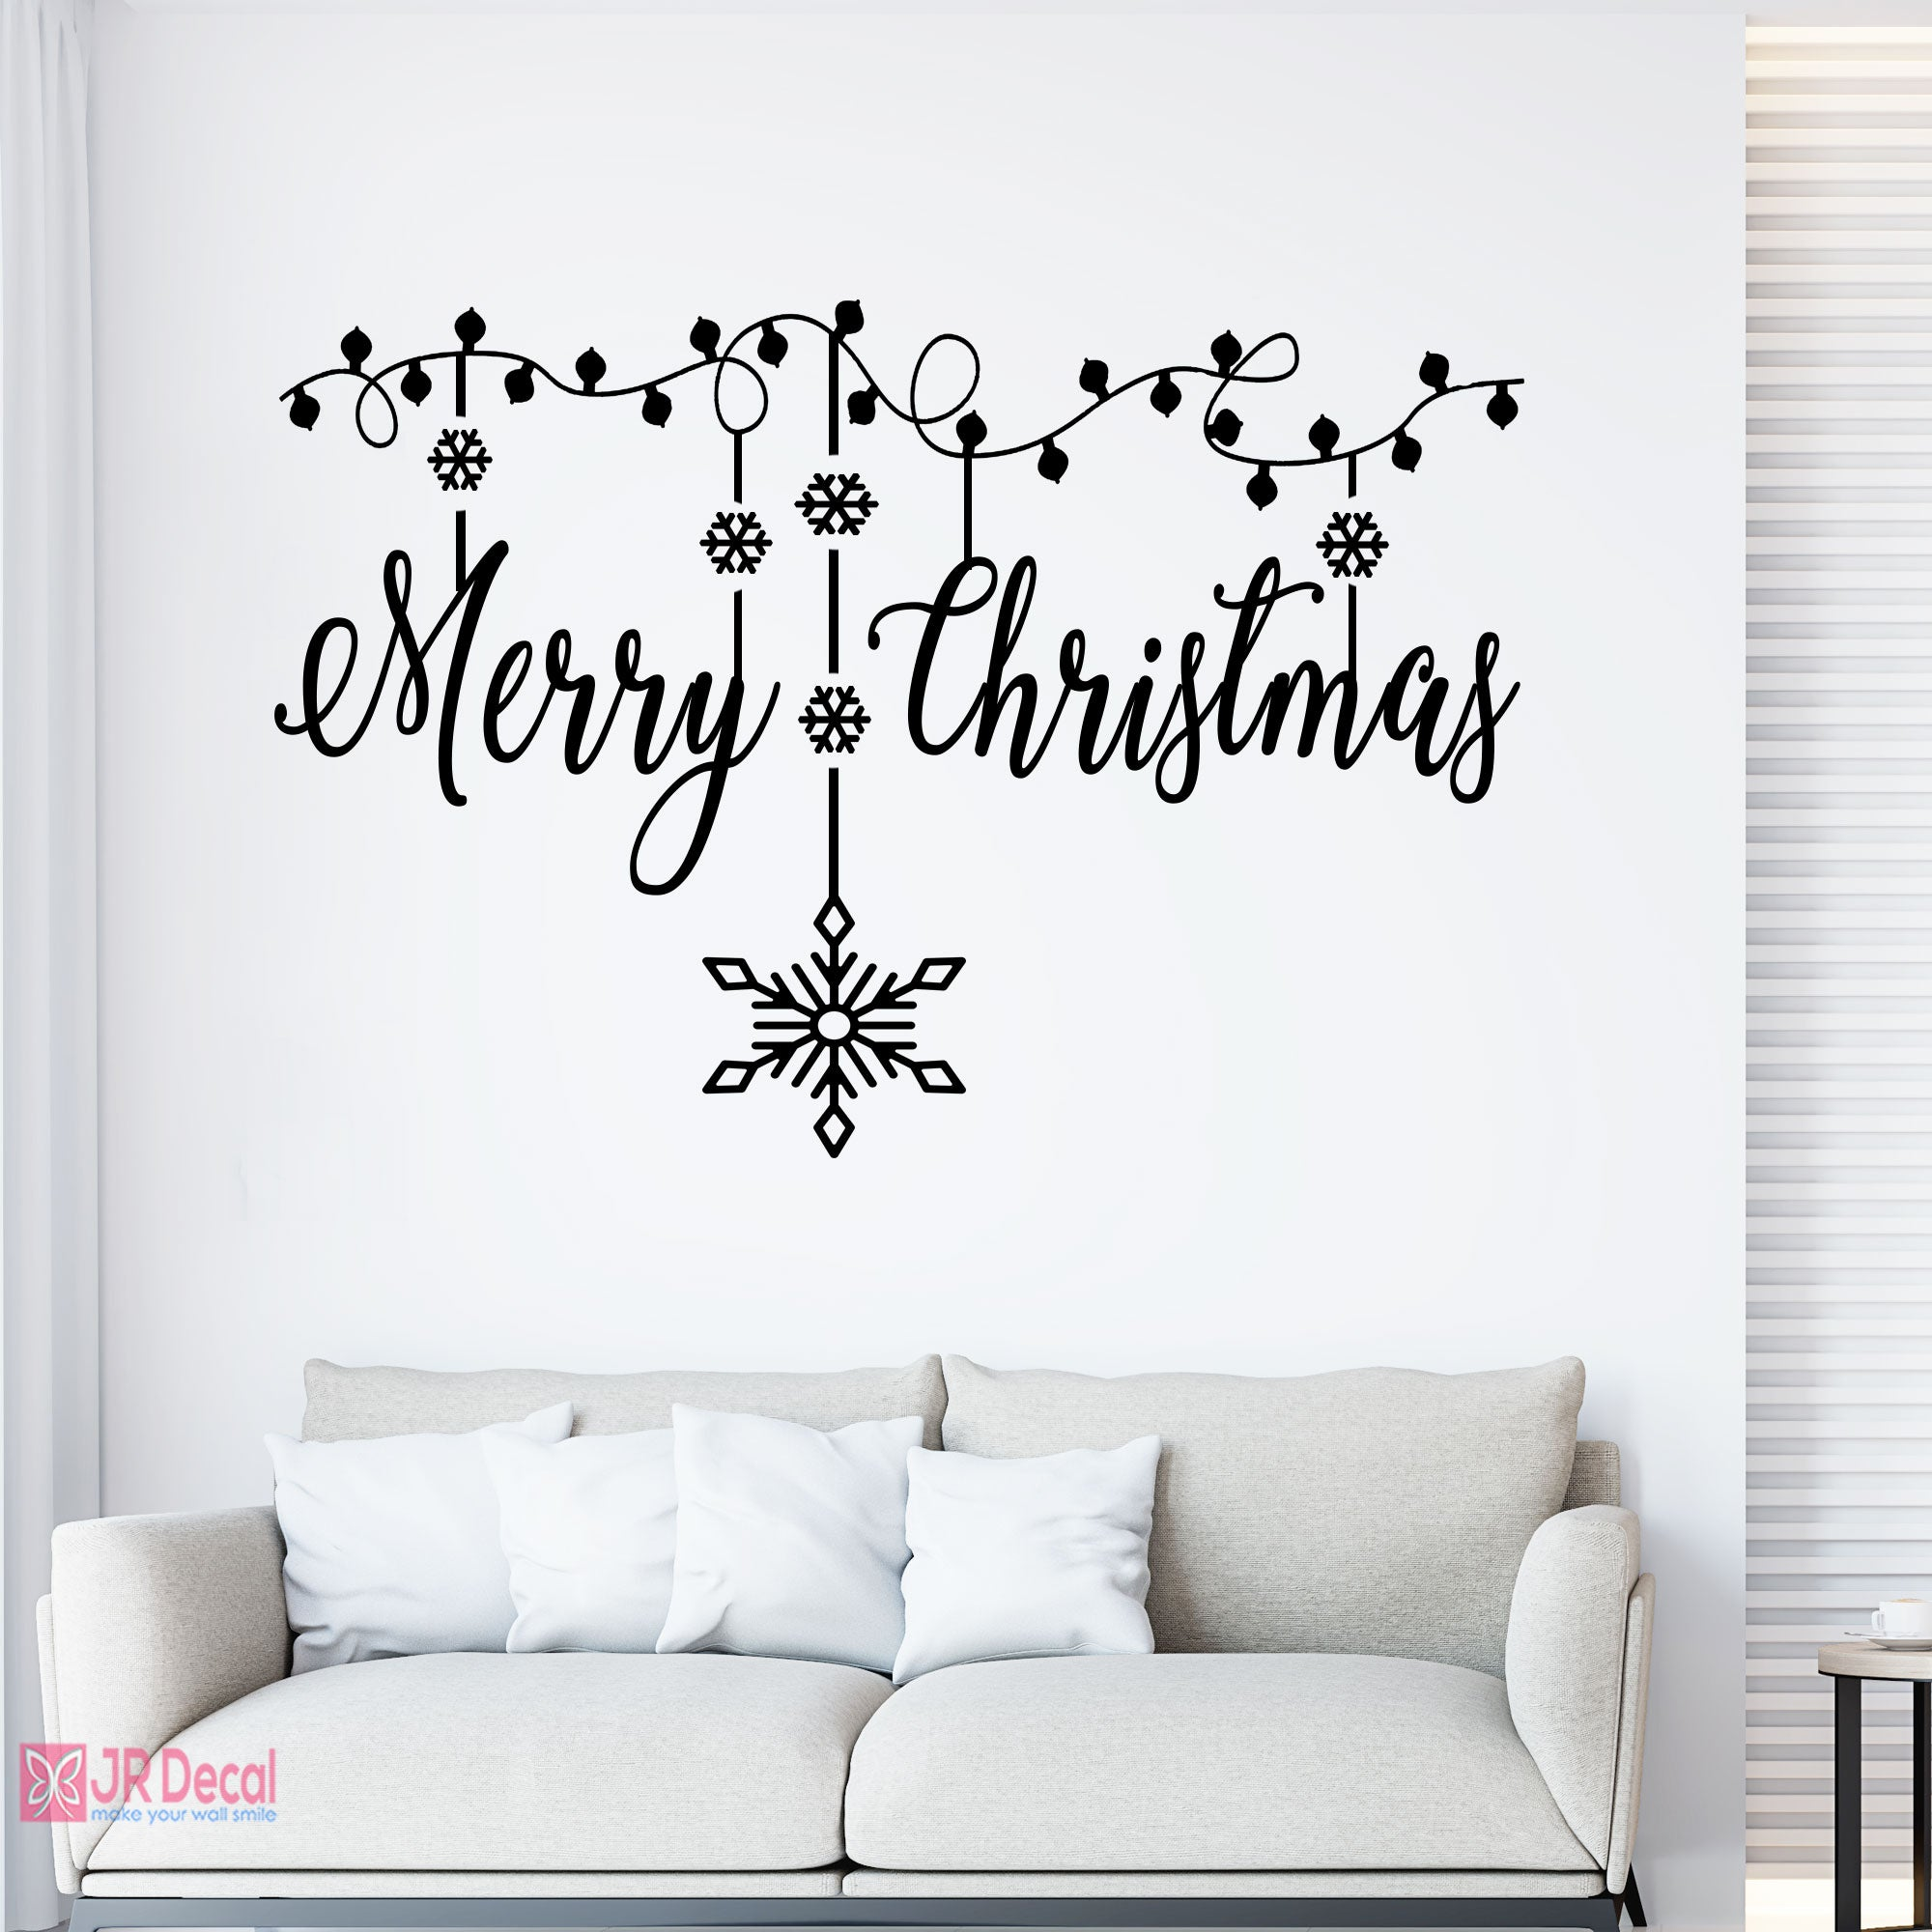 Gbp Inr Cad Usd Aud Eur Jpy Home Wall Decals Decor Kitchen Bathroom Bedroom Quotes And Words Sports Football Golf Rugby Boxing Nursery Wall Stickers Celebrity Children S Dinosaur Butterfly Animal Cloud Stars Unicorn Heart Princess Flower